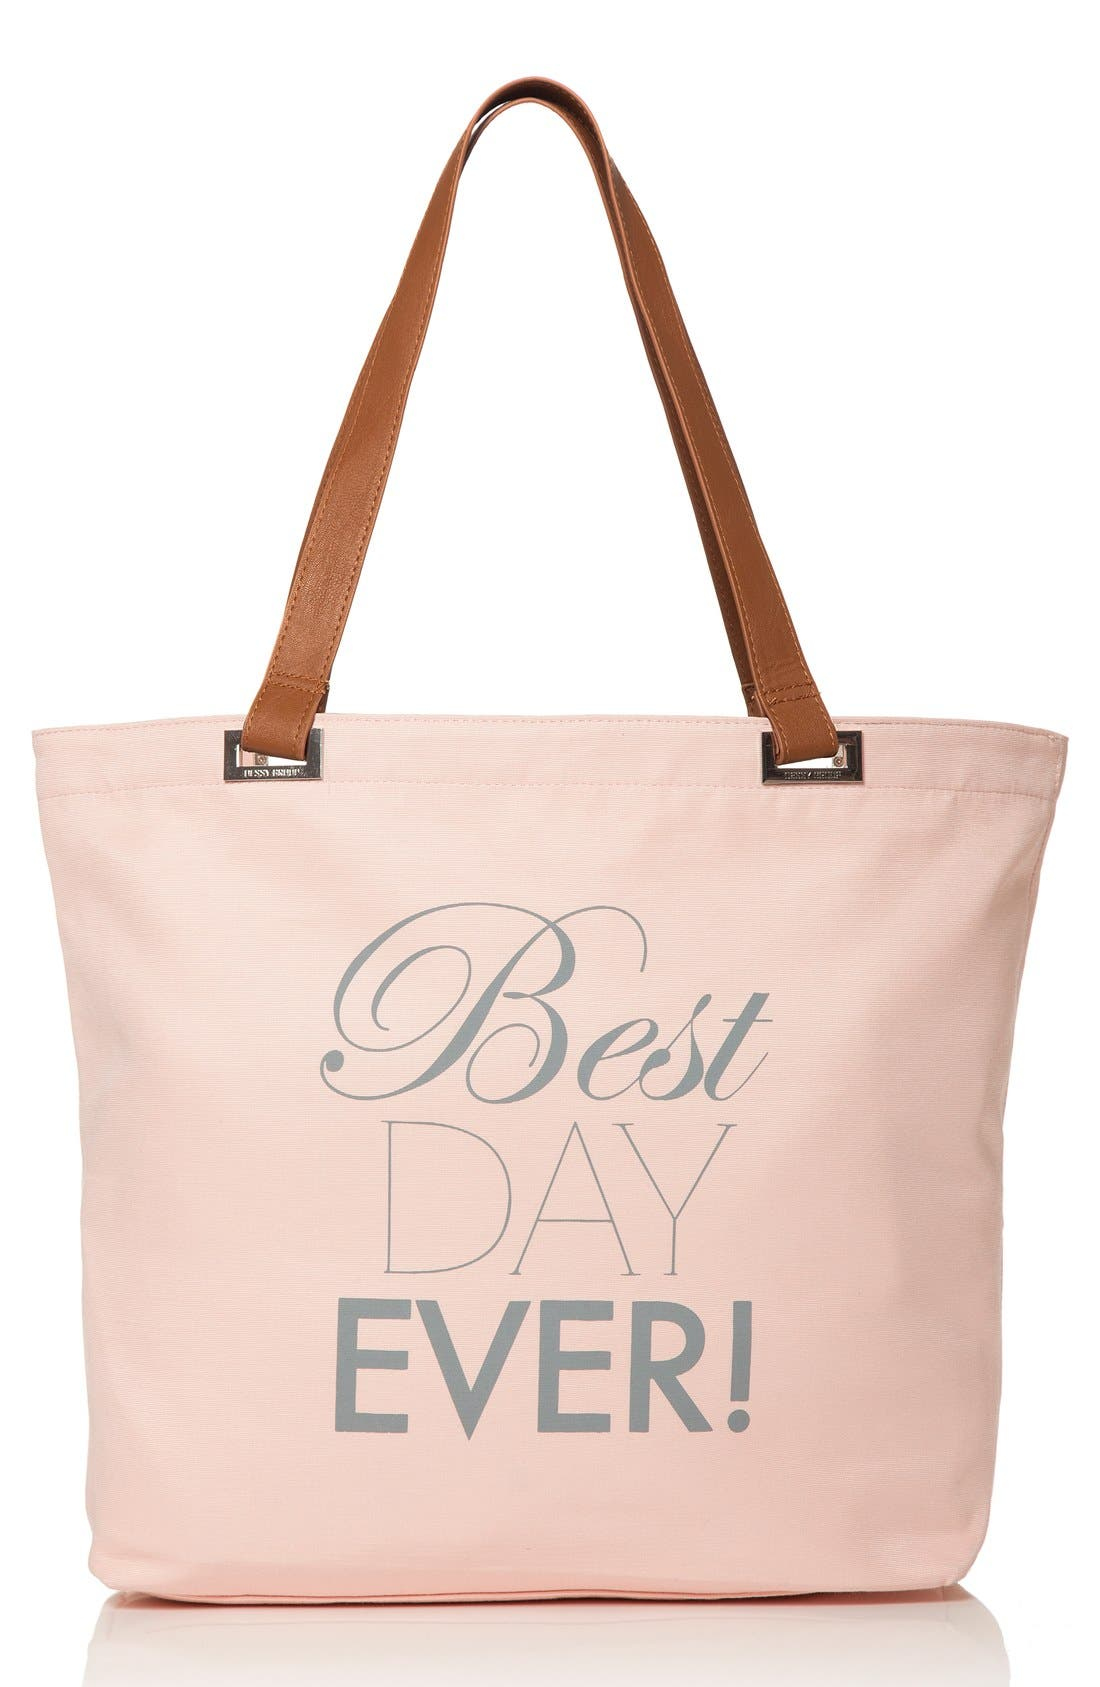 'Best Day Ever' Tote,                             Main thumbnail 1, color,                             ROSE